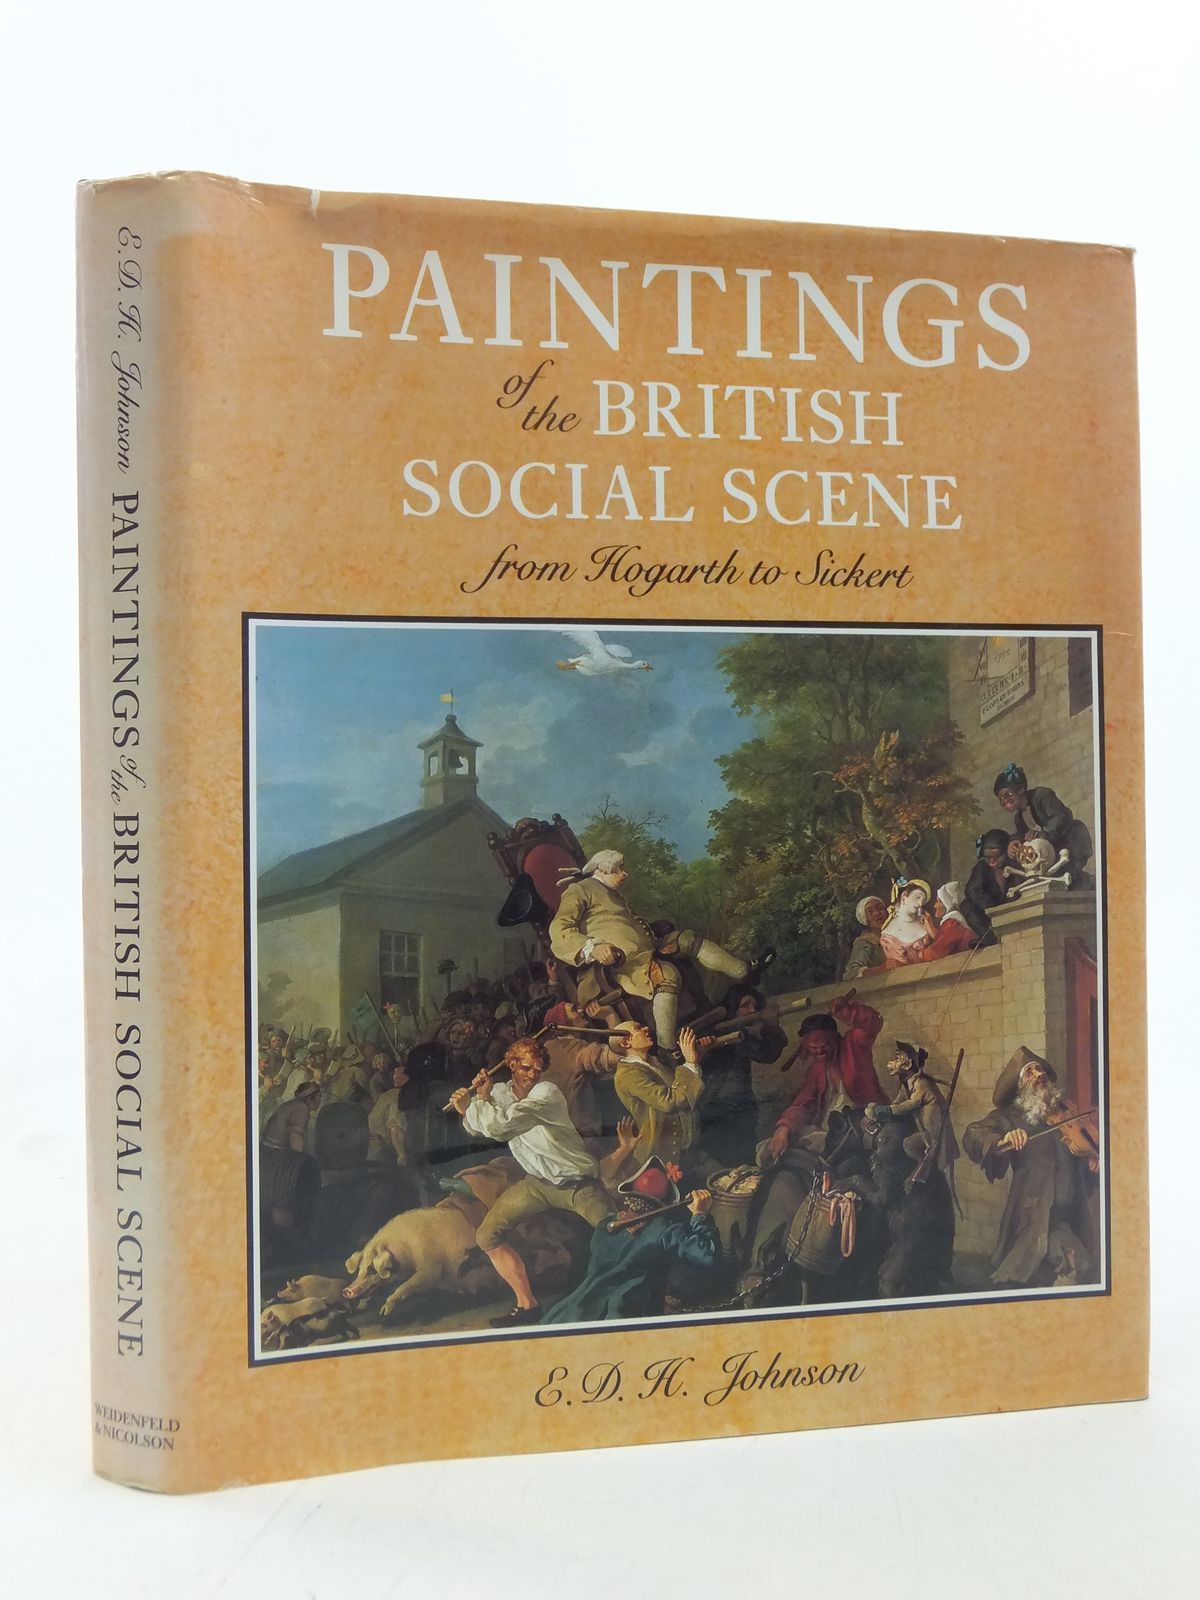 Photo of PAINTINGS OF THE BRITISH SOCIAL SCENE FROM HOGARTH TO SICKERT written by Johnson, E.D.H. published by Weidenfeld and Nicolson (STOCK CODE: 1605818)  for sale by Stella & Rose's Books